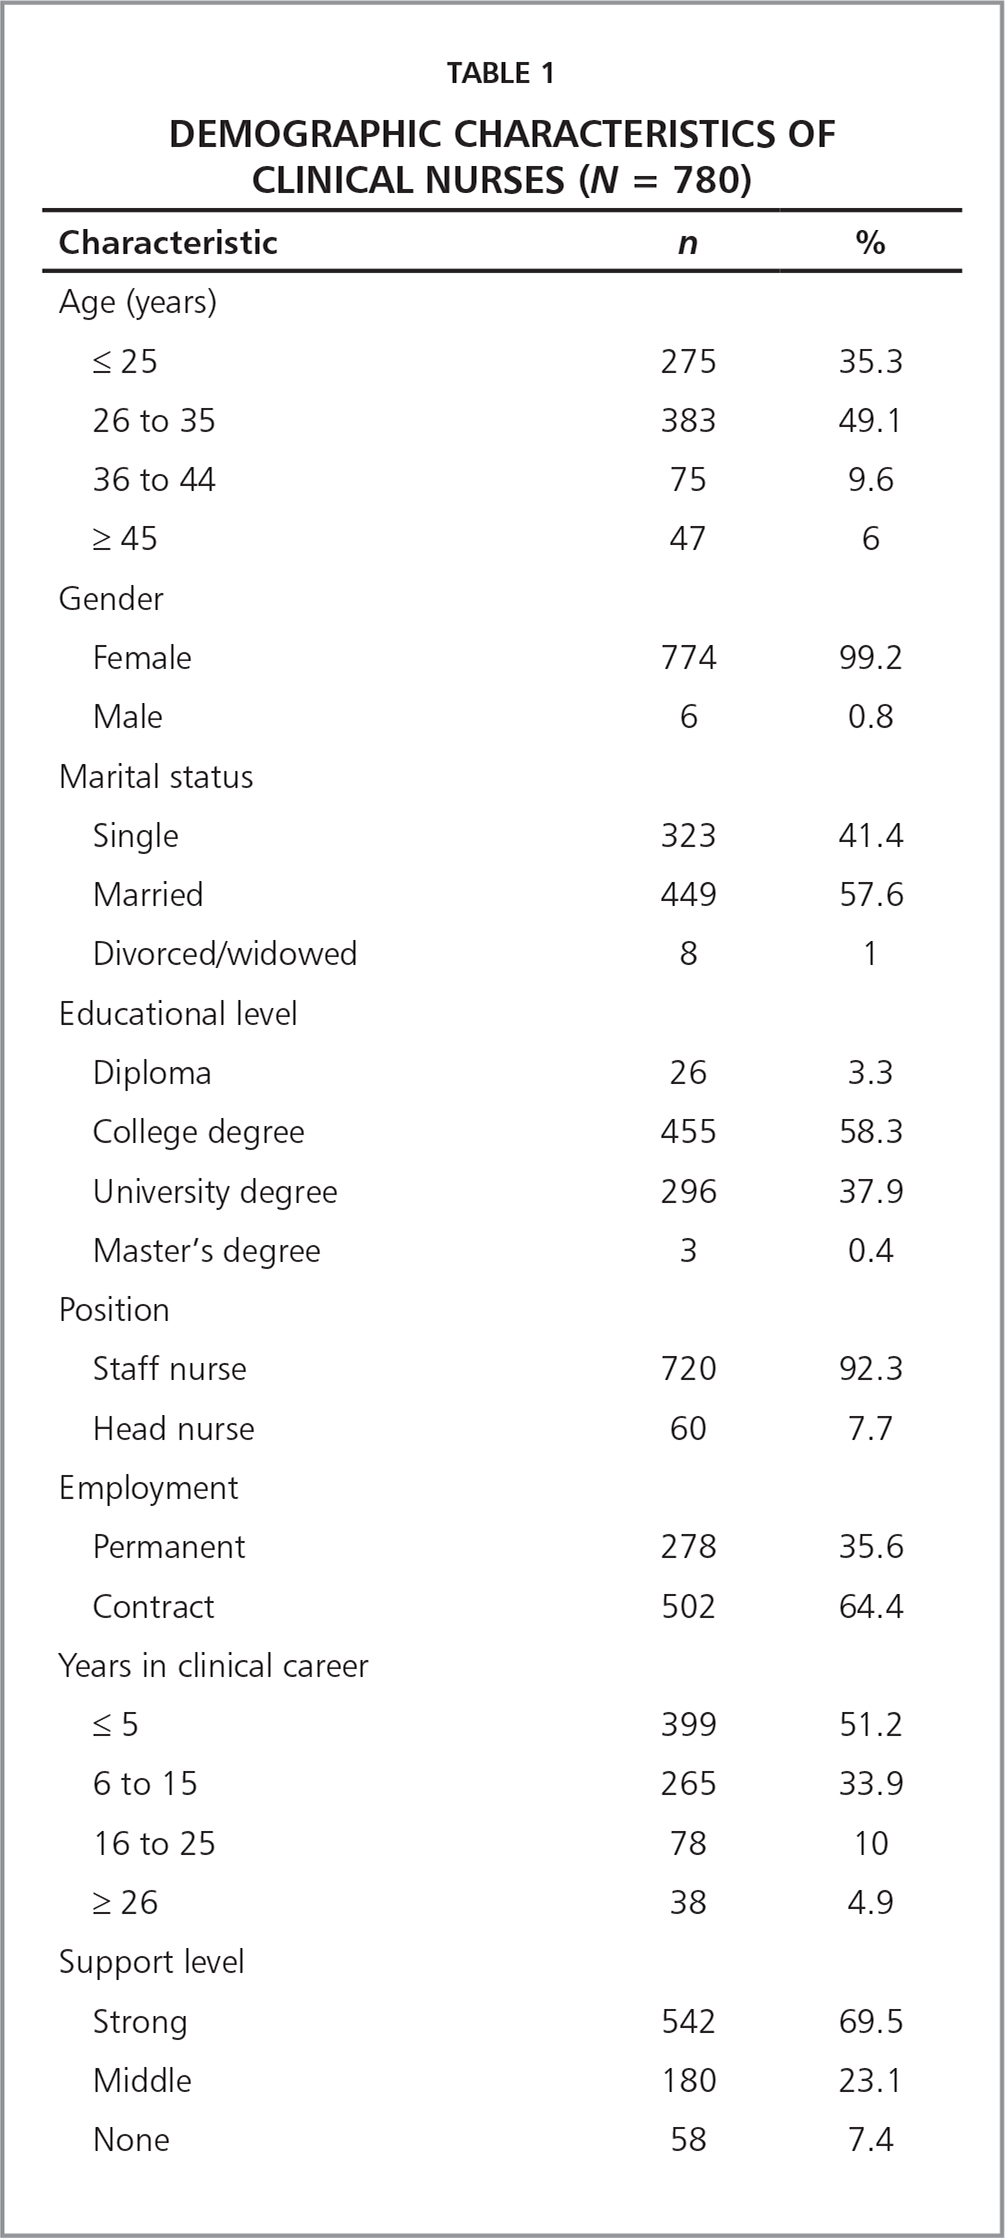 Demographic Characteristics of Clinical Nurses (N = 780)